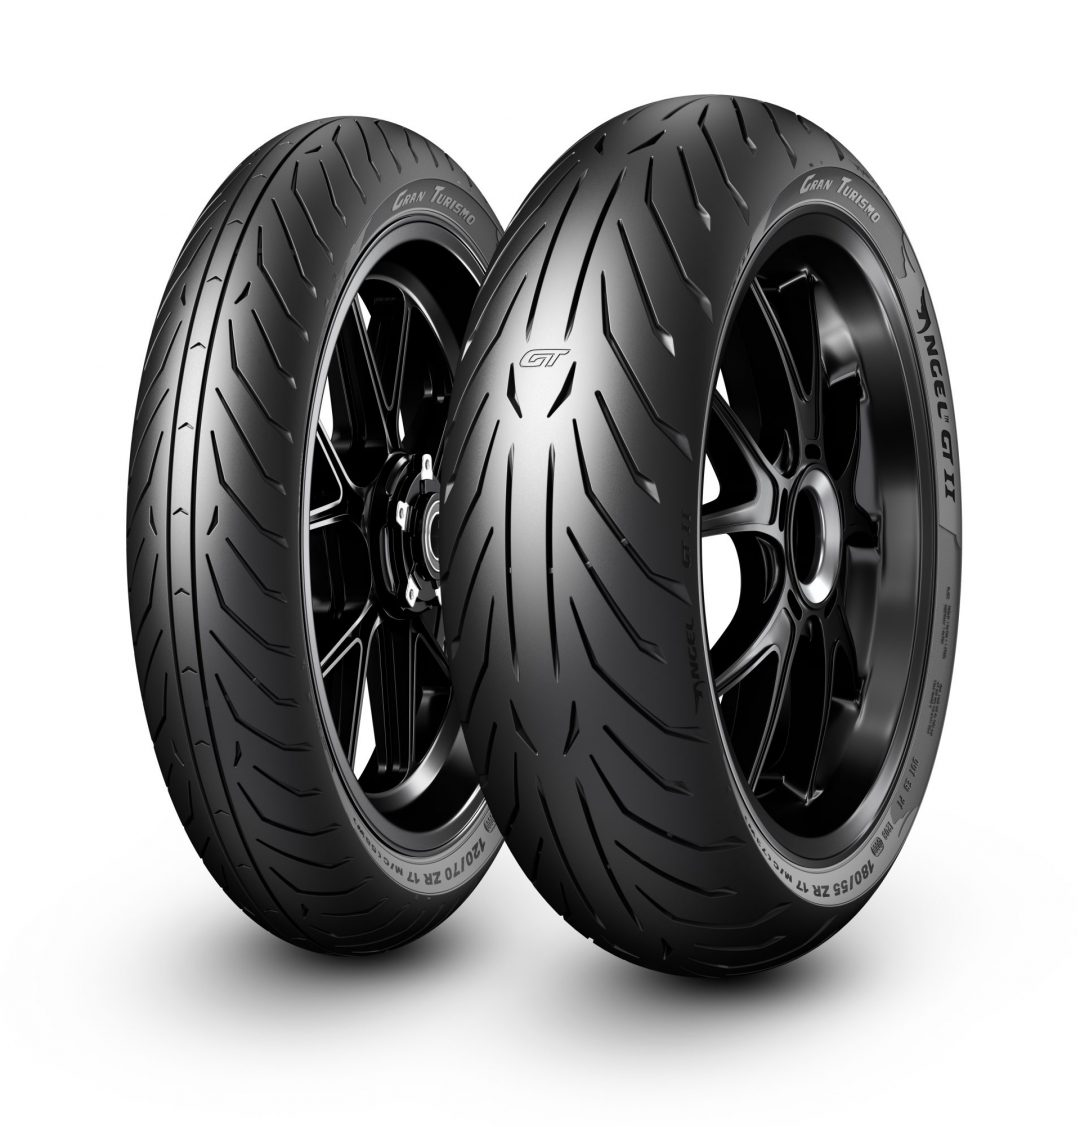 Pirelli Angel GTII review - we look at the pros and cons of Pirelli's premium tyre for sports tourers.